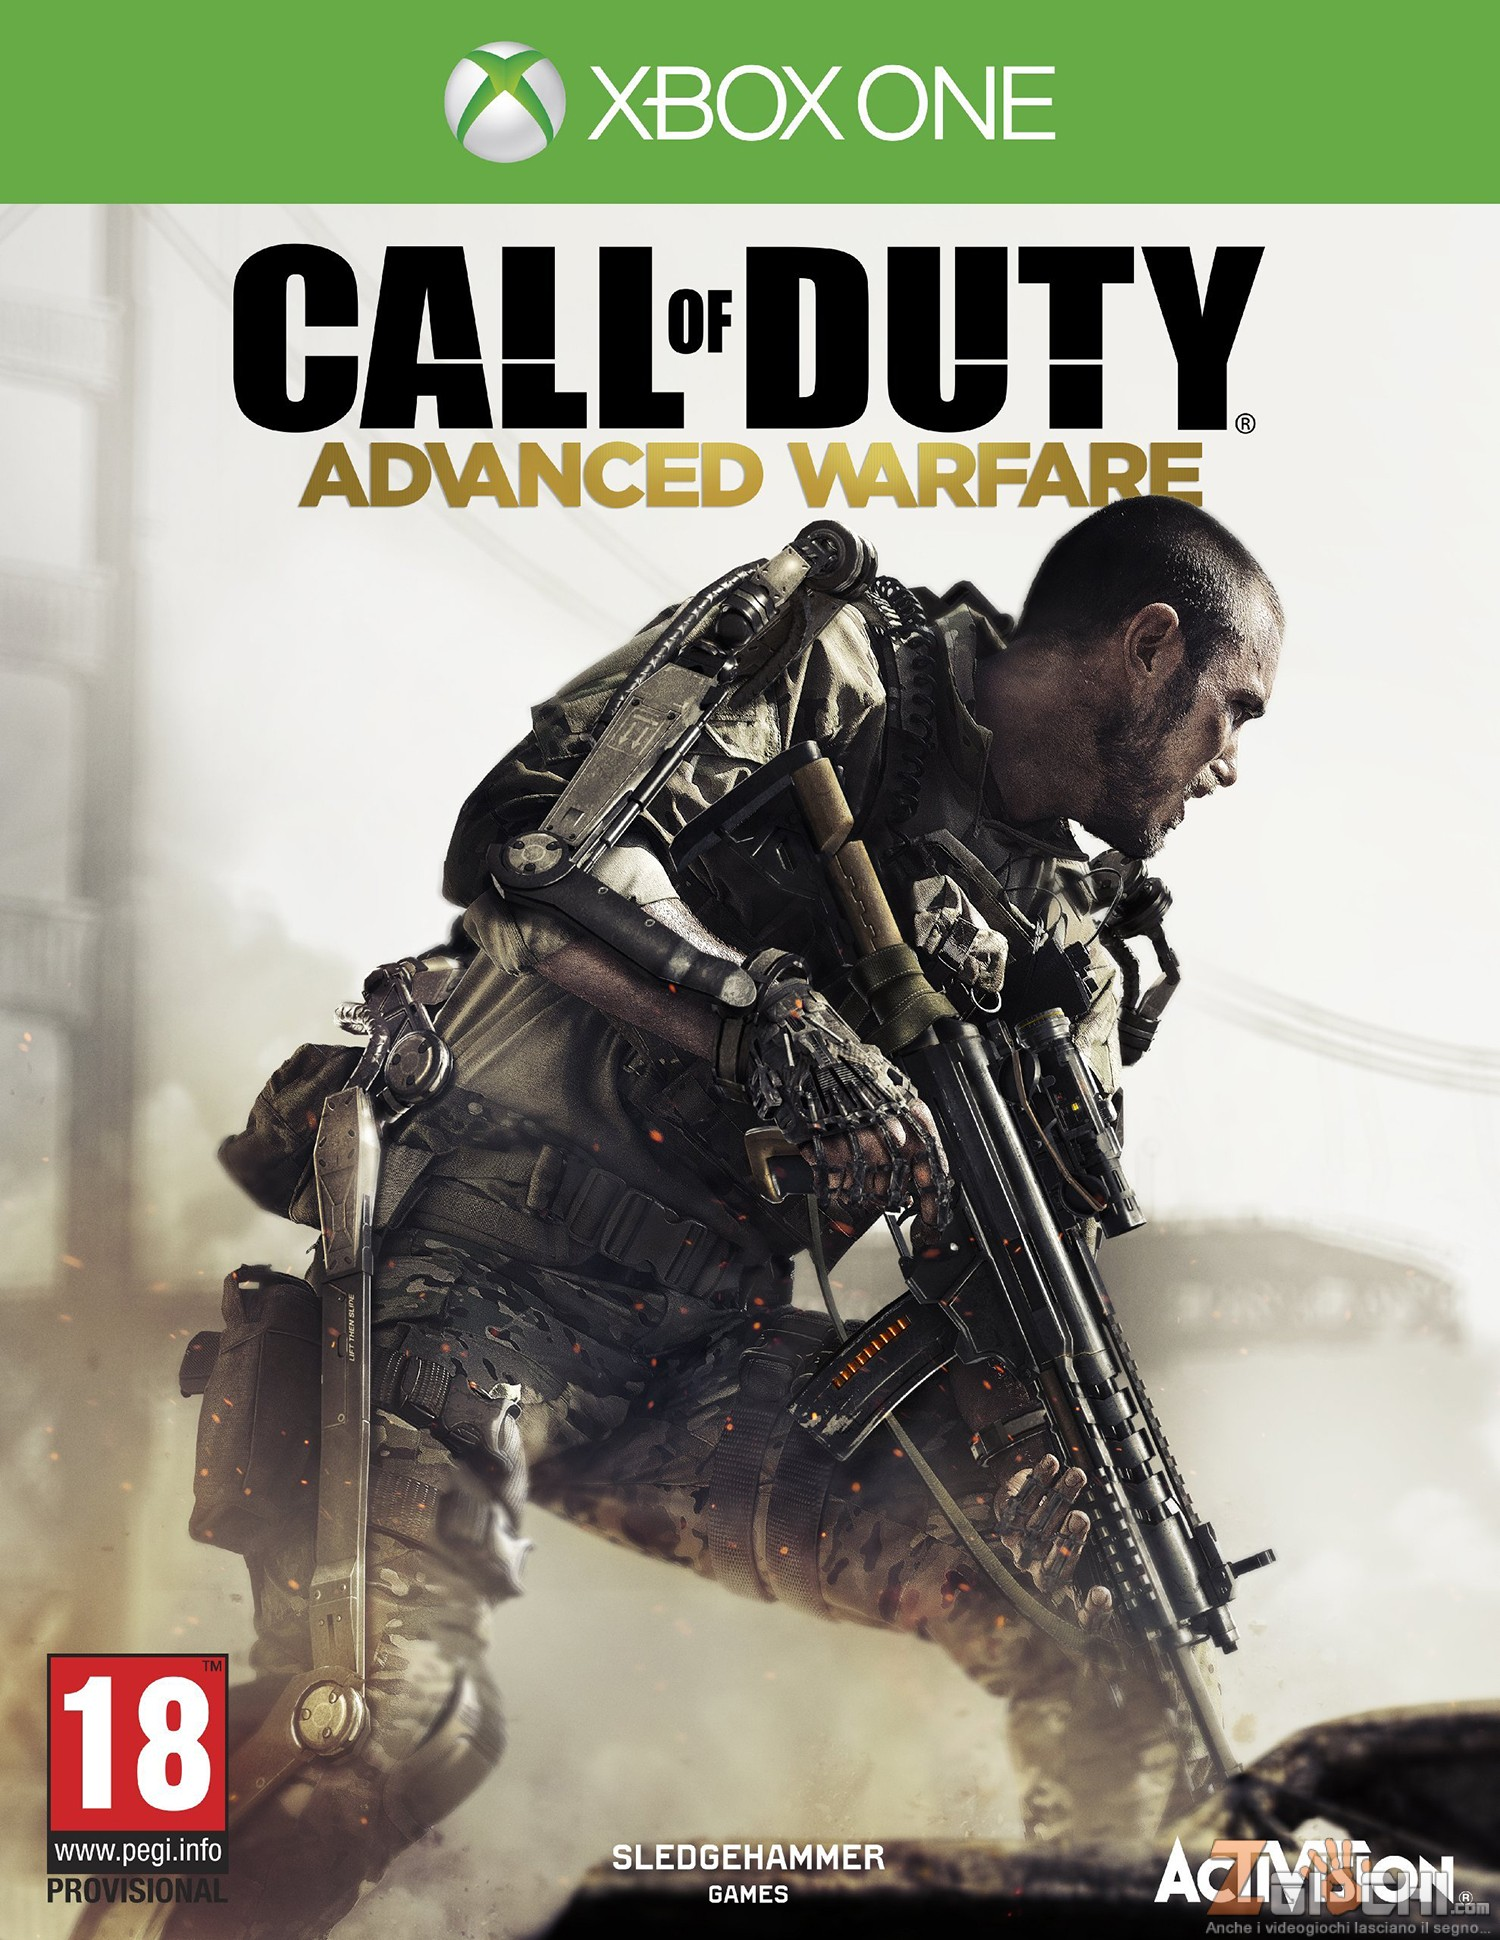 Call of Duty: Advanced Warfare – Xbox One